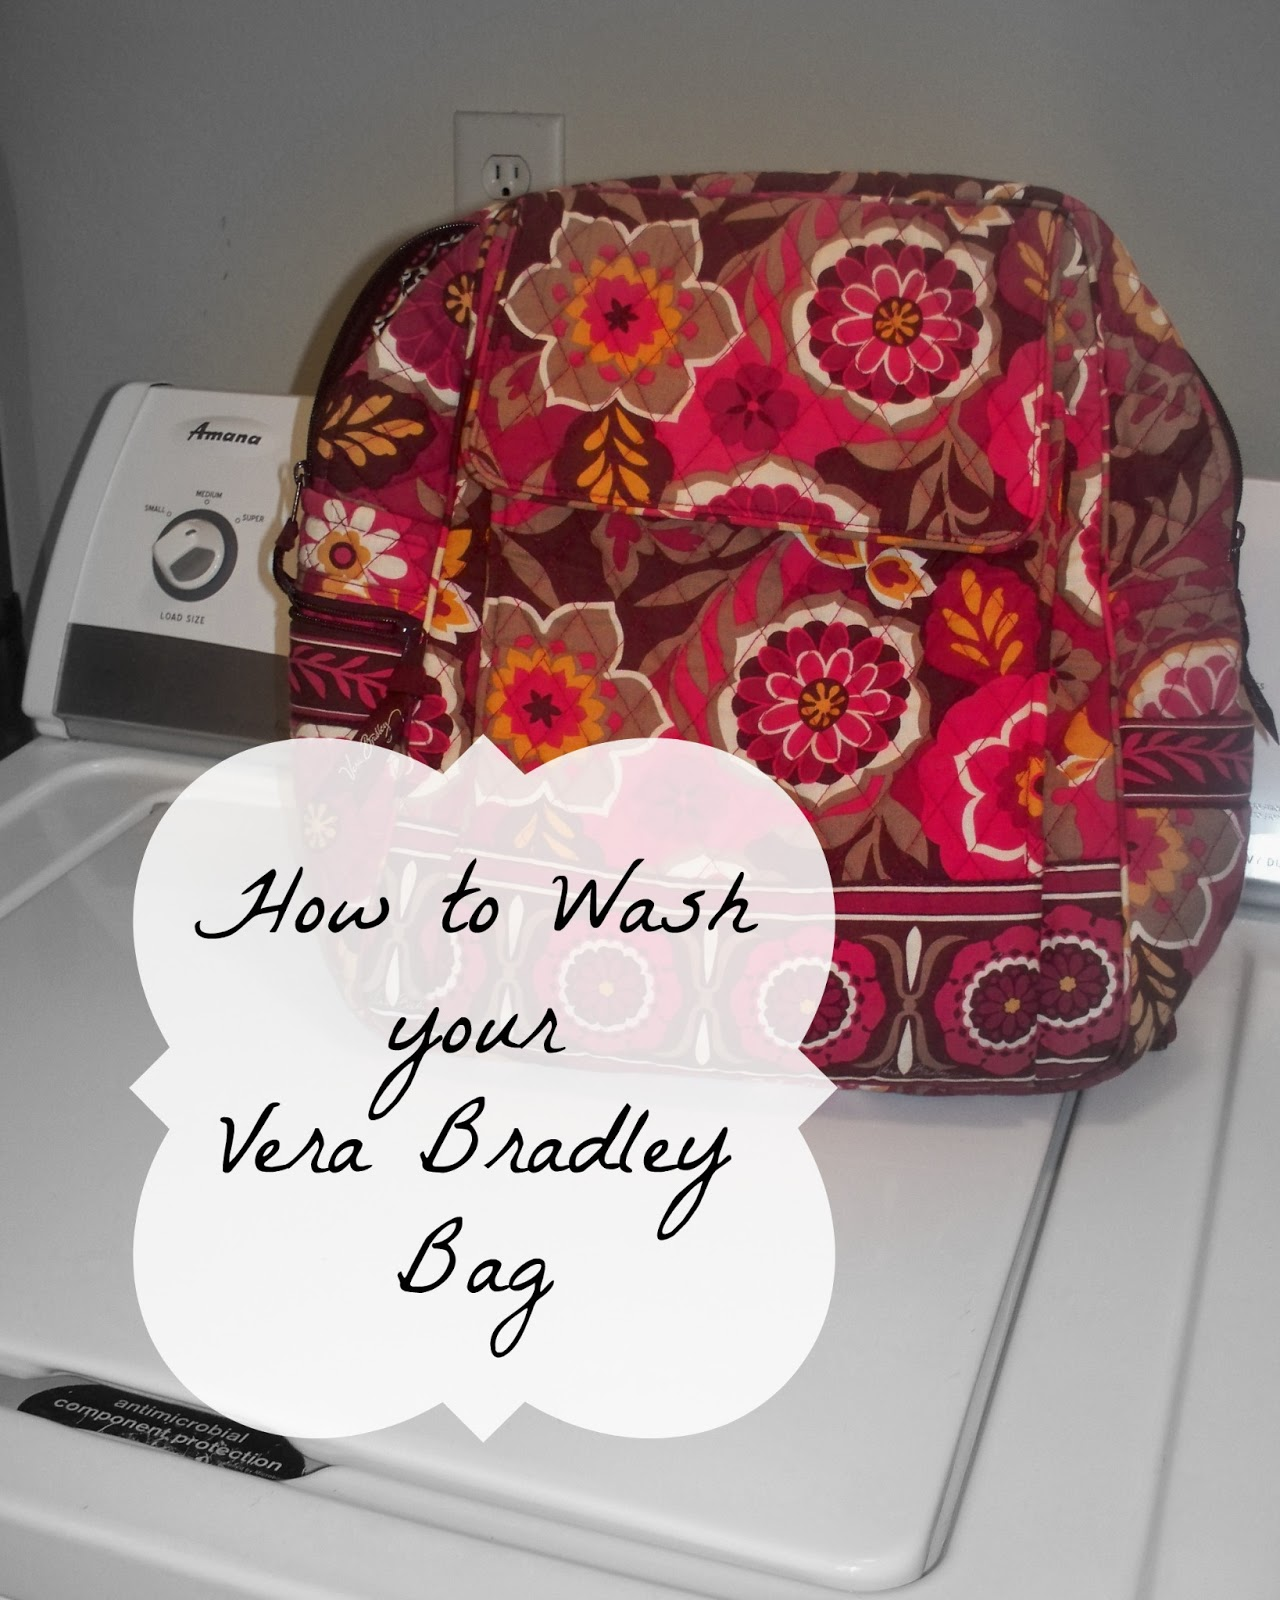 Before I Went Away To College Had No Idea What A Vera Bradley Bag Was Guess Sheltered When It Came Material Things Like That